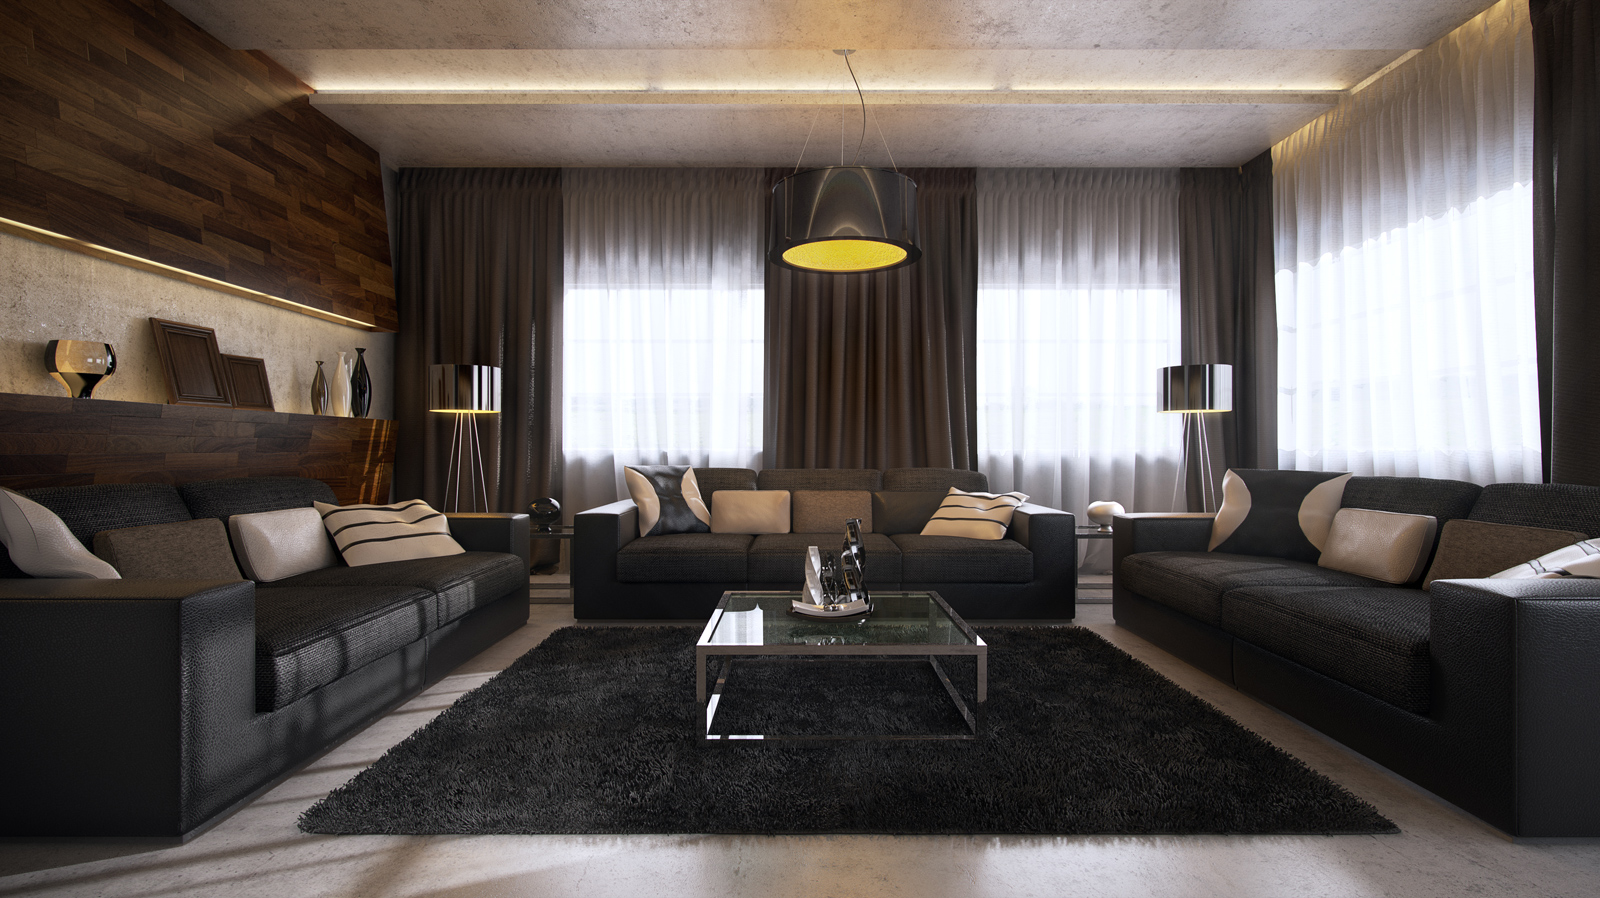 contemporaneo de interiores by kulayan3d on deviantart